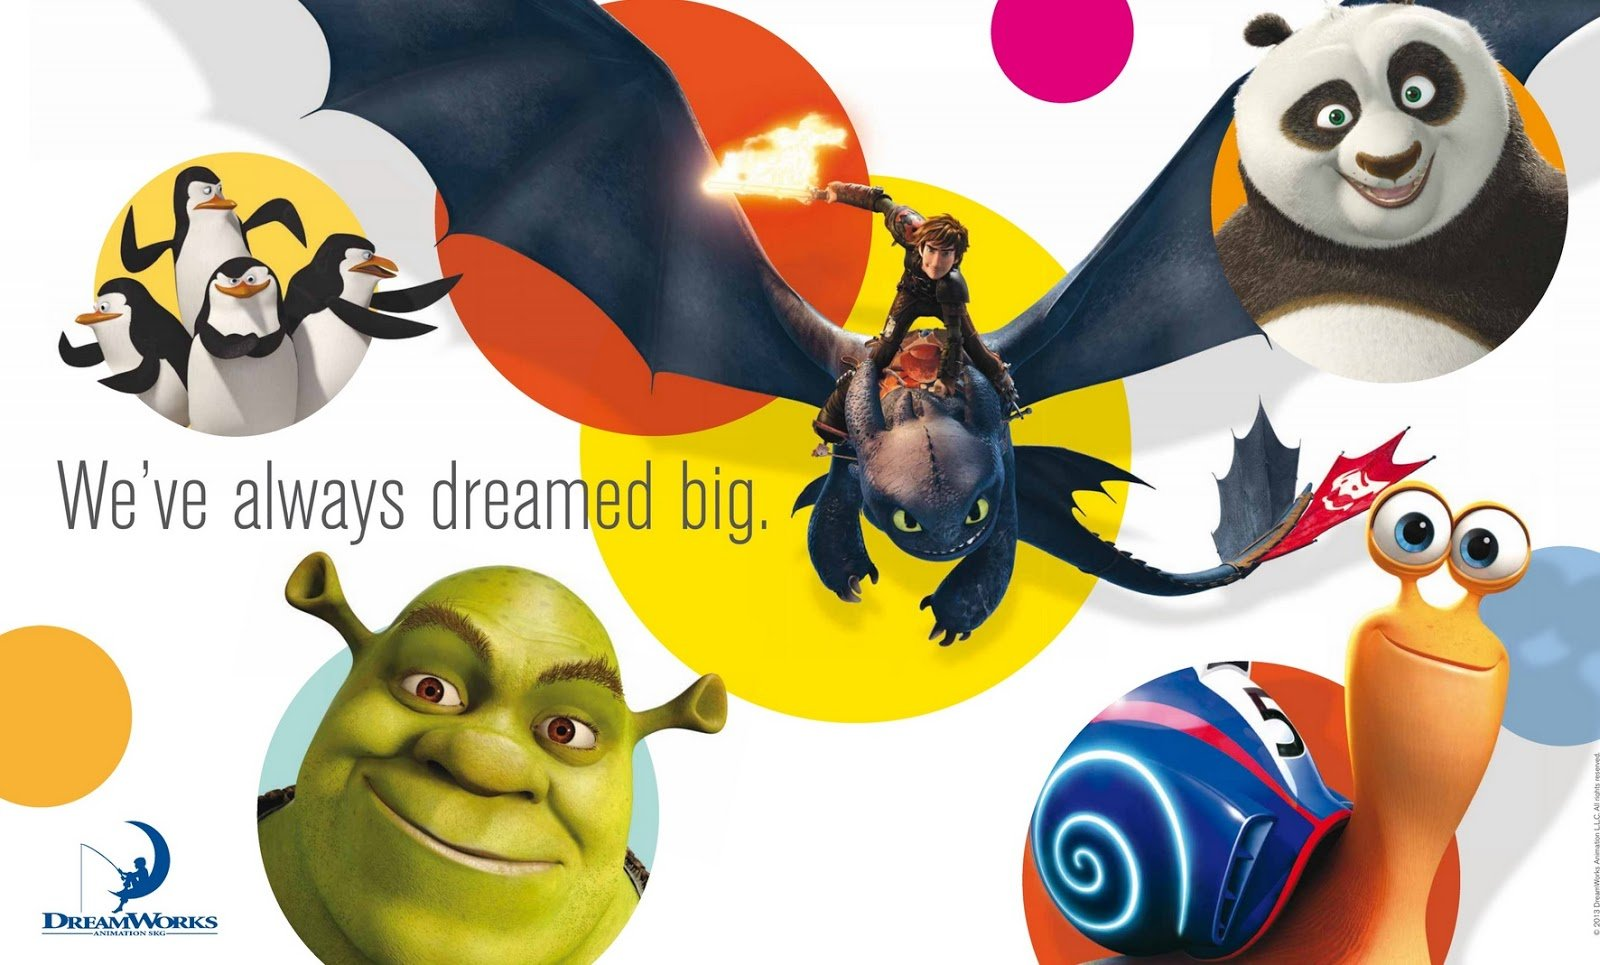 How-To-Train-Your-Dragon-2-promo-Picture (2).jpg